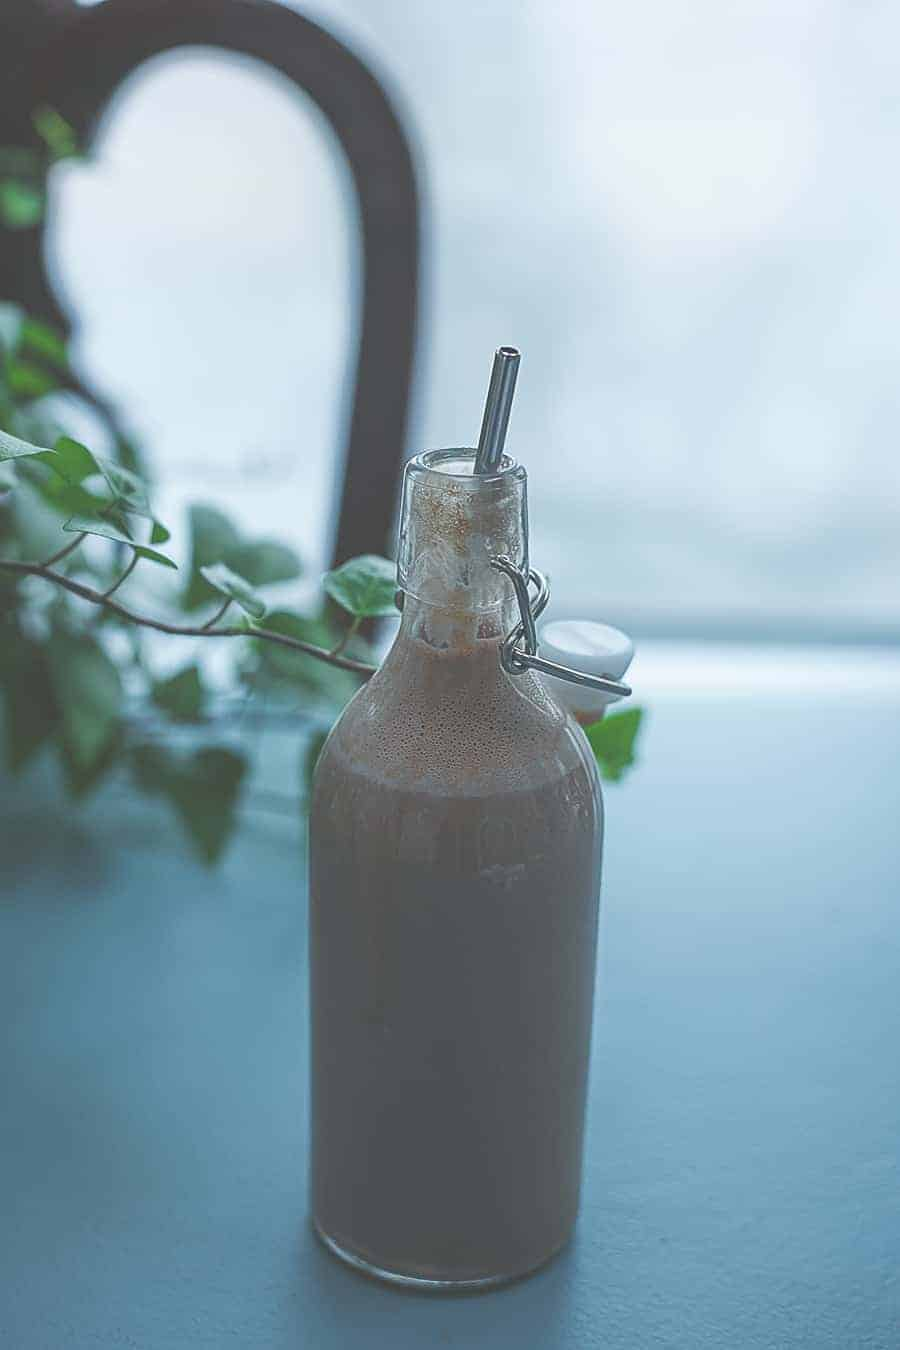 chocolate milk in glass bottle with stainless steel straw